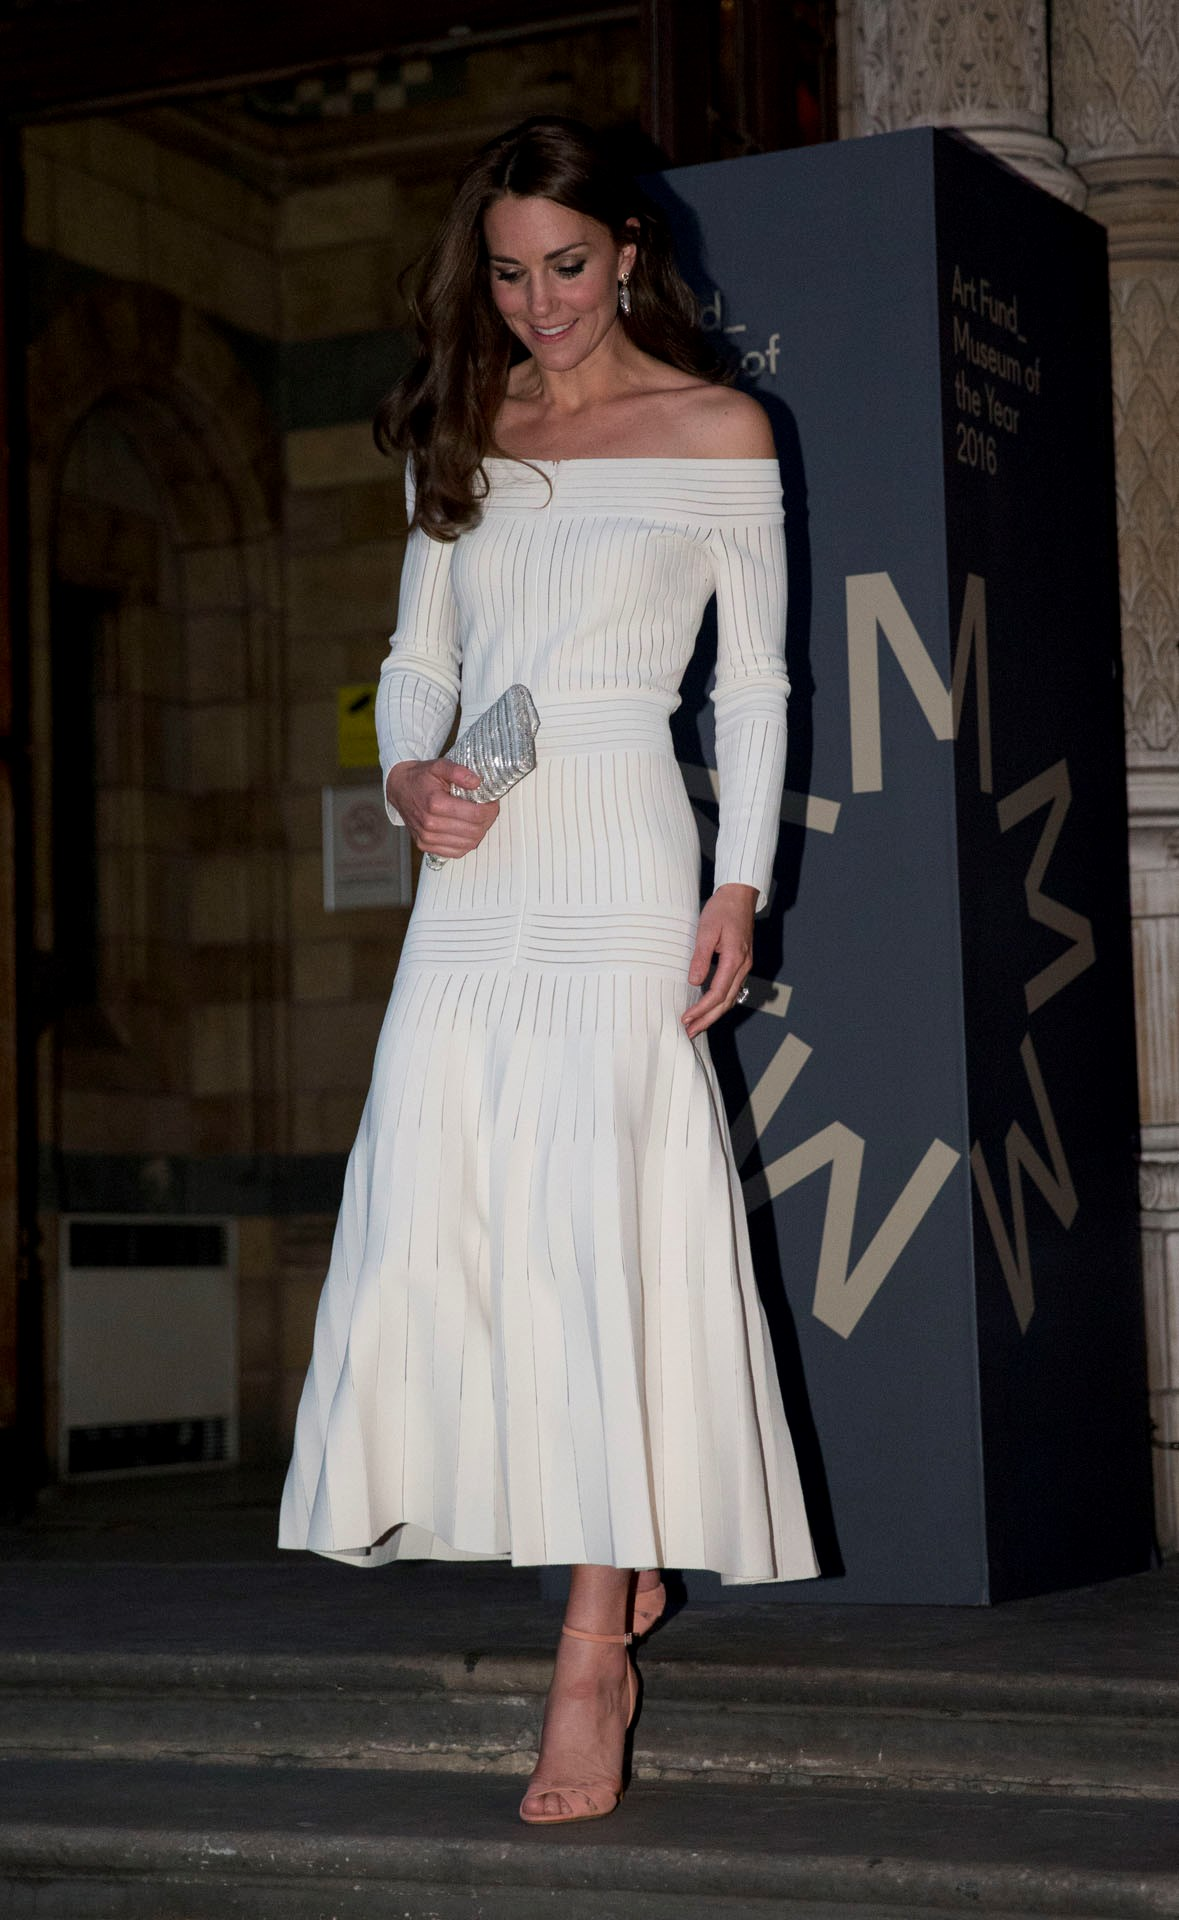 In what has been described as one of her most daring looks, the Duchess embraced the season's most popular trend: the off-the-shoulder dress. Her $3000 cream gown was by London-based designer Barbara Casasola, and was an instant hit with fashion critics.